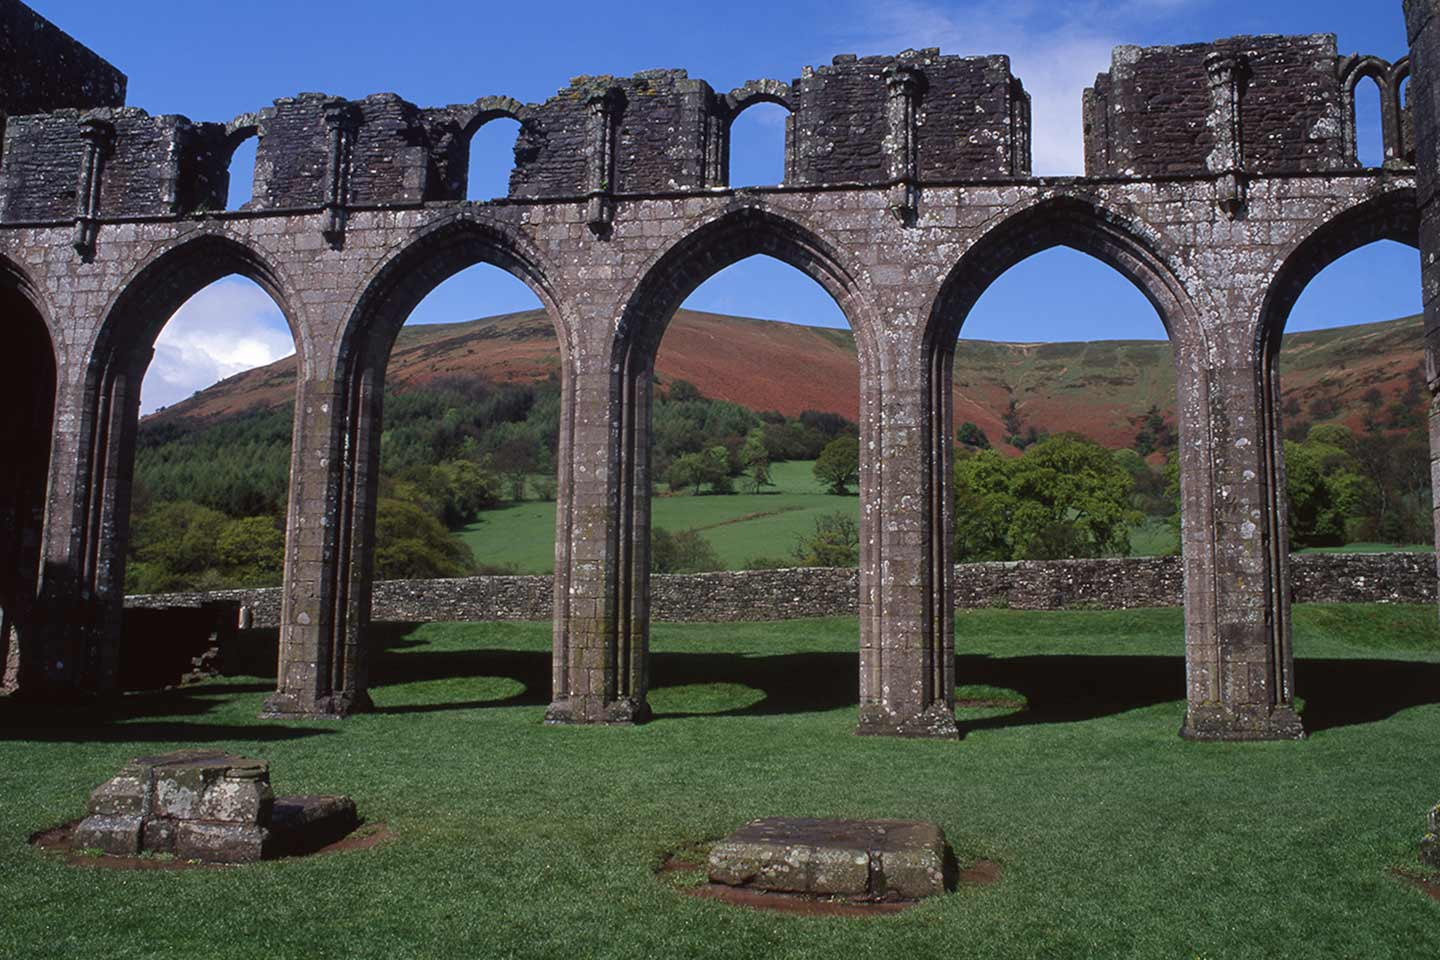 Image of Llanthony Priory church ruin in Wales